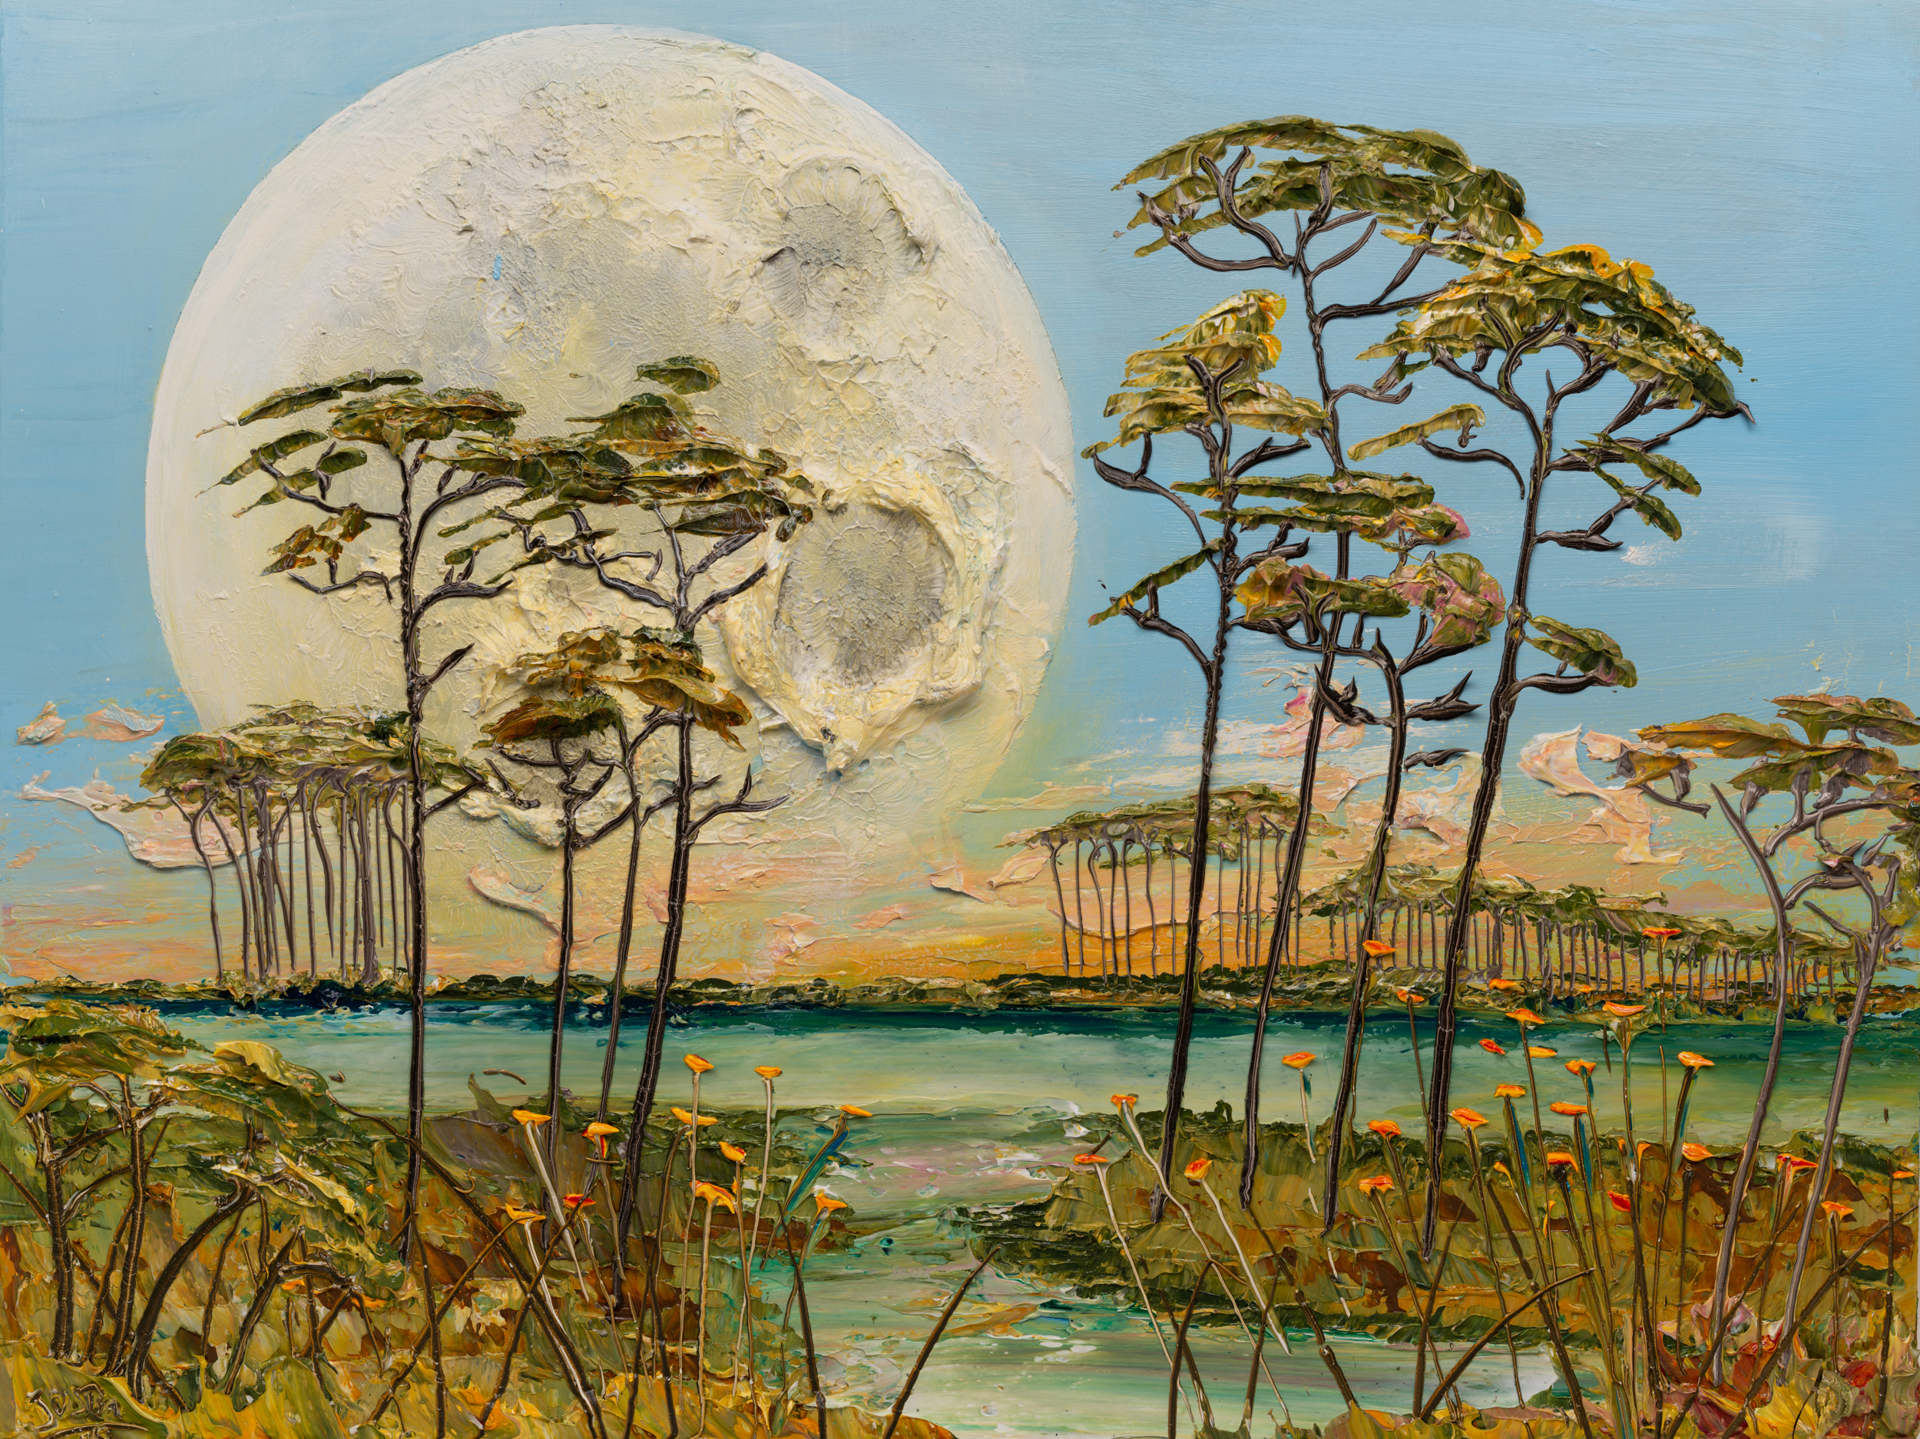 MOONSCAPE MS-40x30-2019-308 by JUSTIN GAFFREY